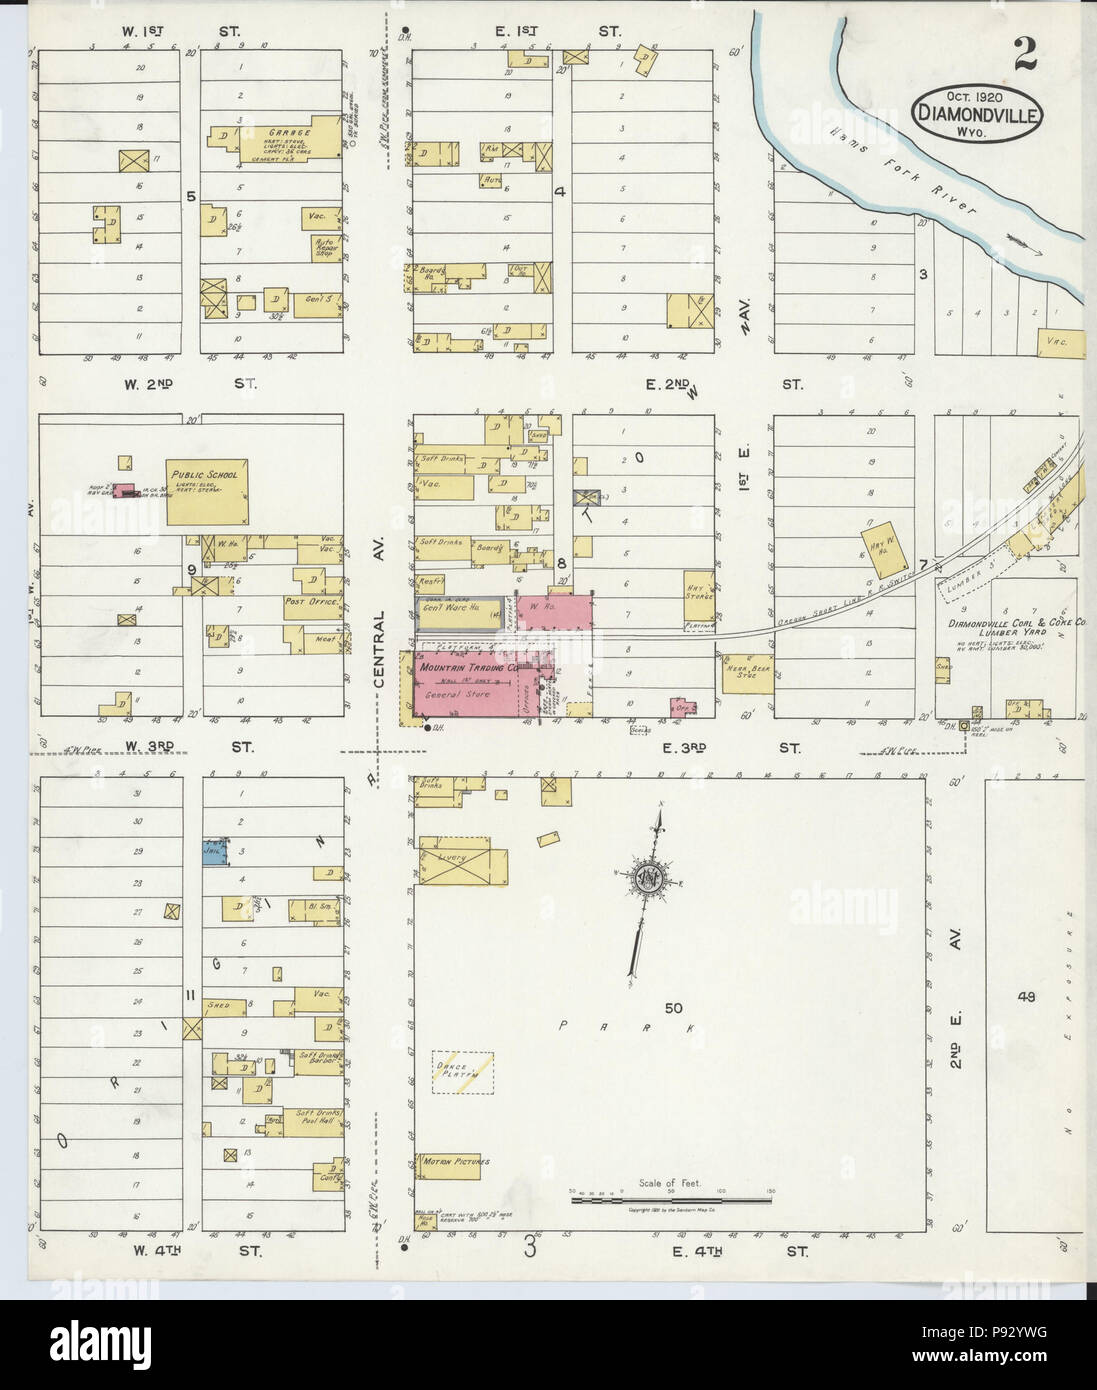 Lincoln County Wyoming Map.496 Sanborn Fire Insurance Map From Diamondville Lincoln County